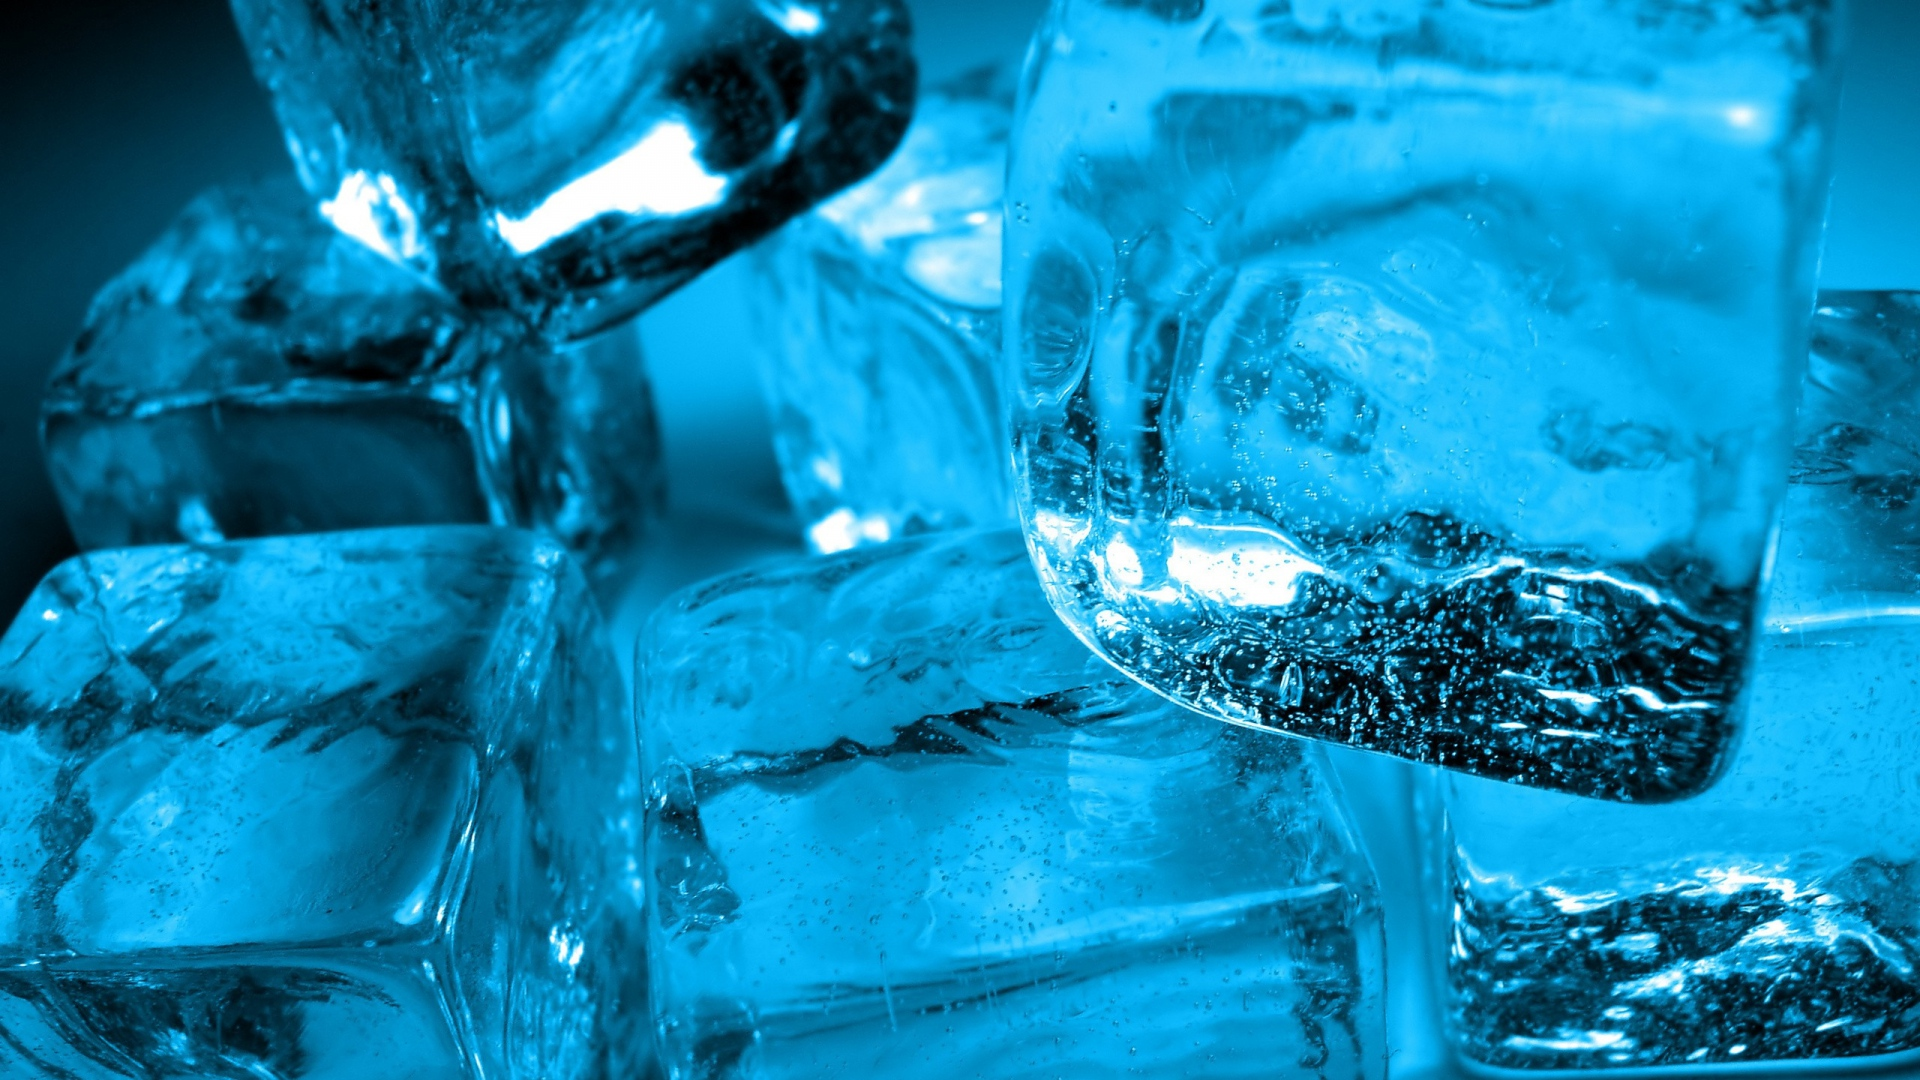 Get The Latest Ice Cube Water News Pictures And Videos Learn All About From Wallpapers4uorg Your Wallpaper Source